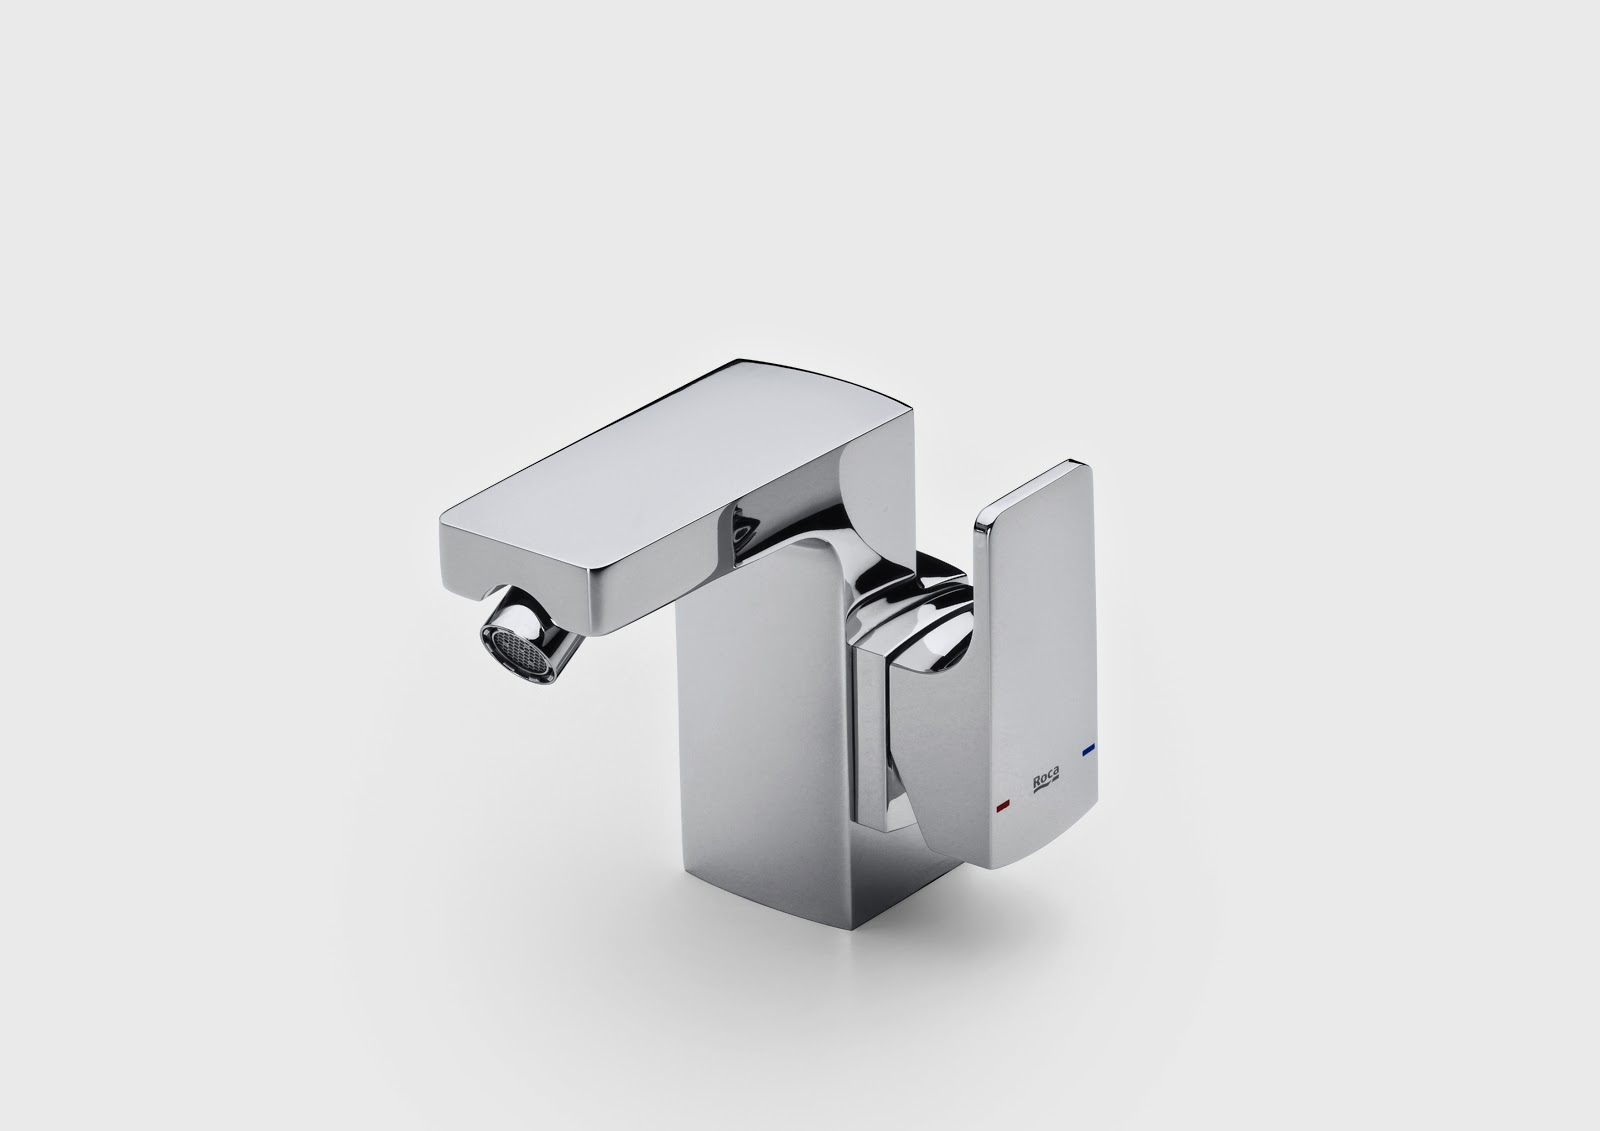 3 2015 roca the global frontrunner in premium sanitary ware solutions announces the launch of its l90 faucet collection the range is differentiated by avant garde faucet